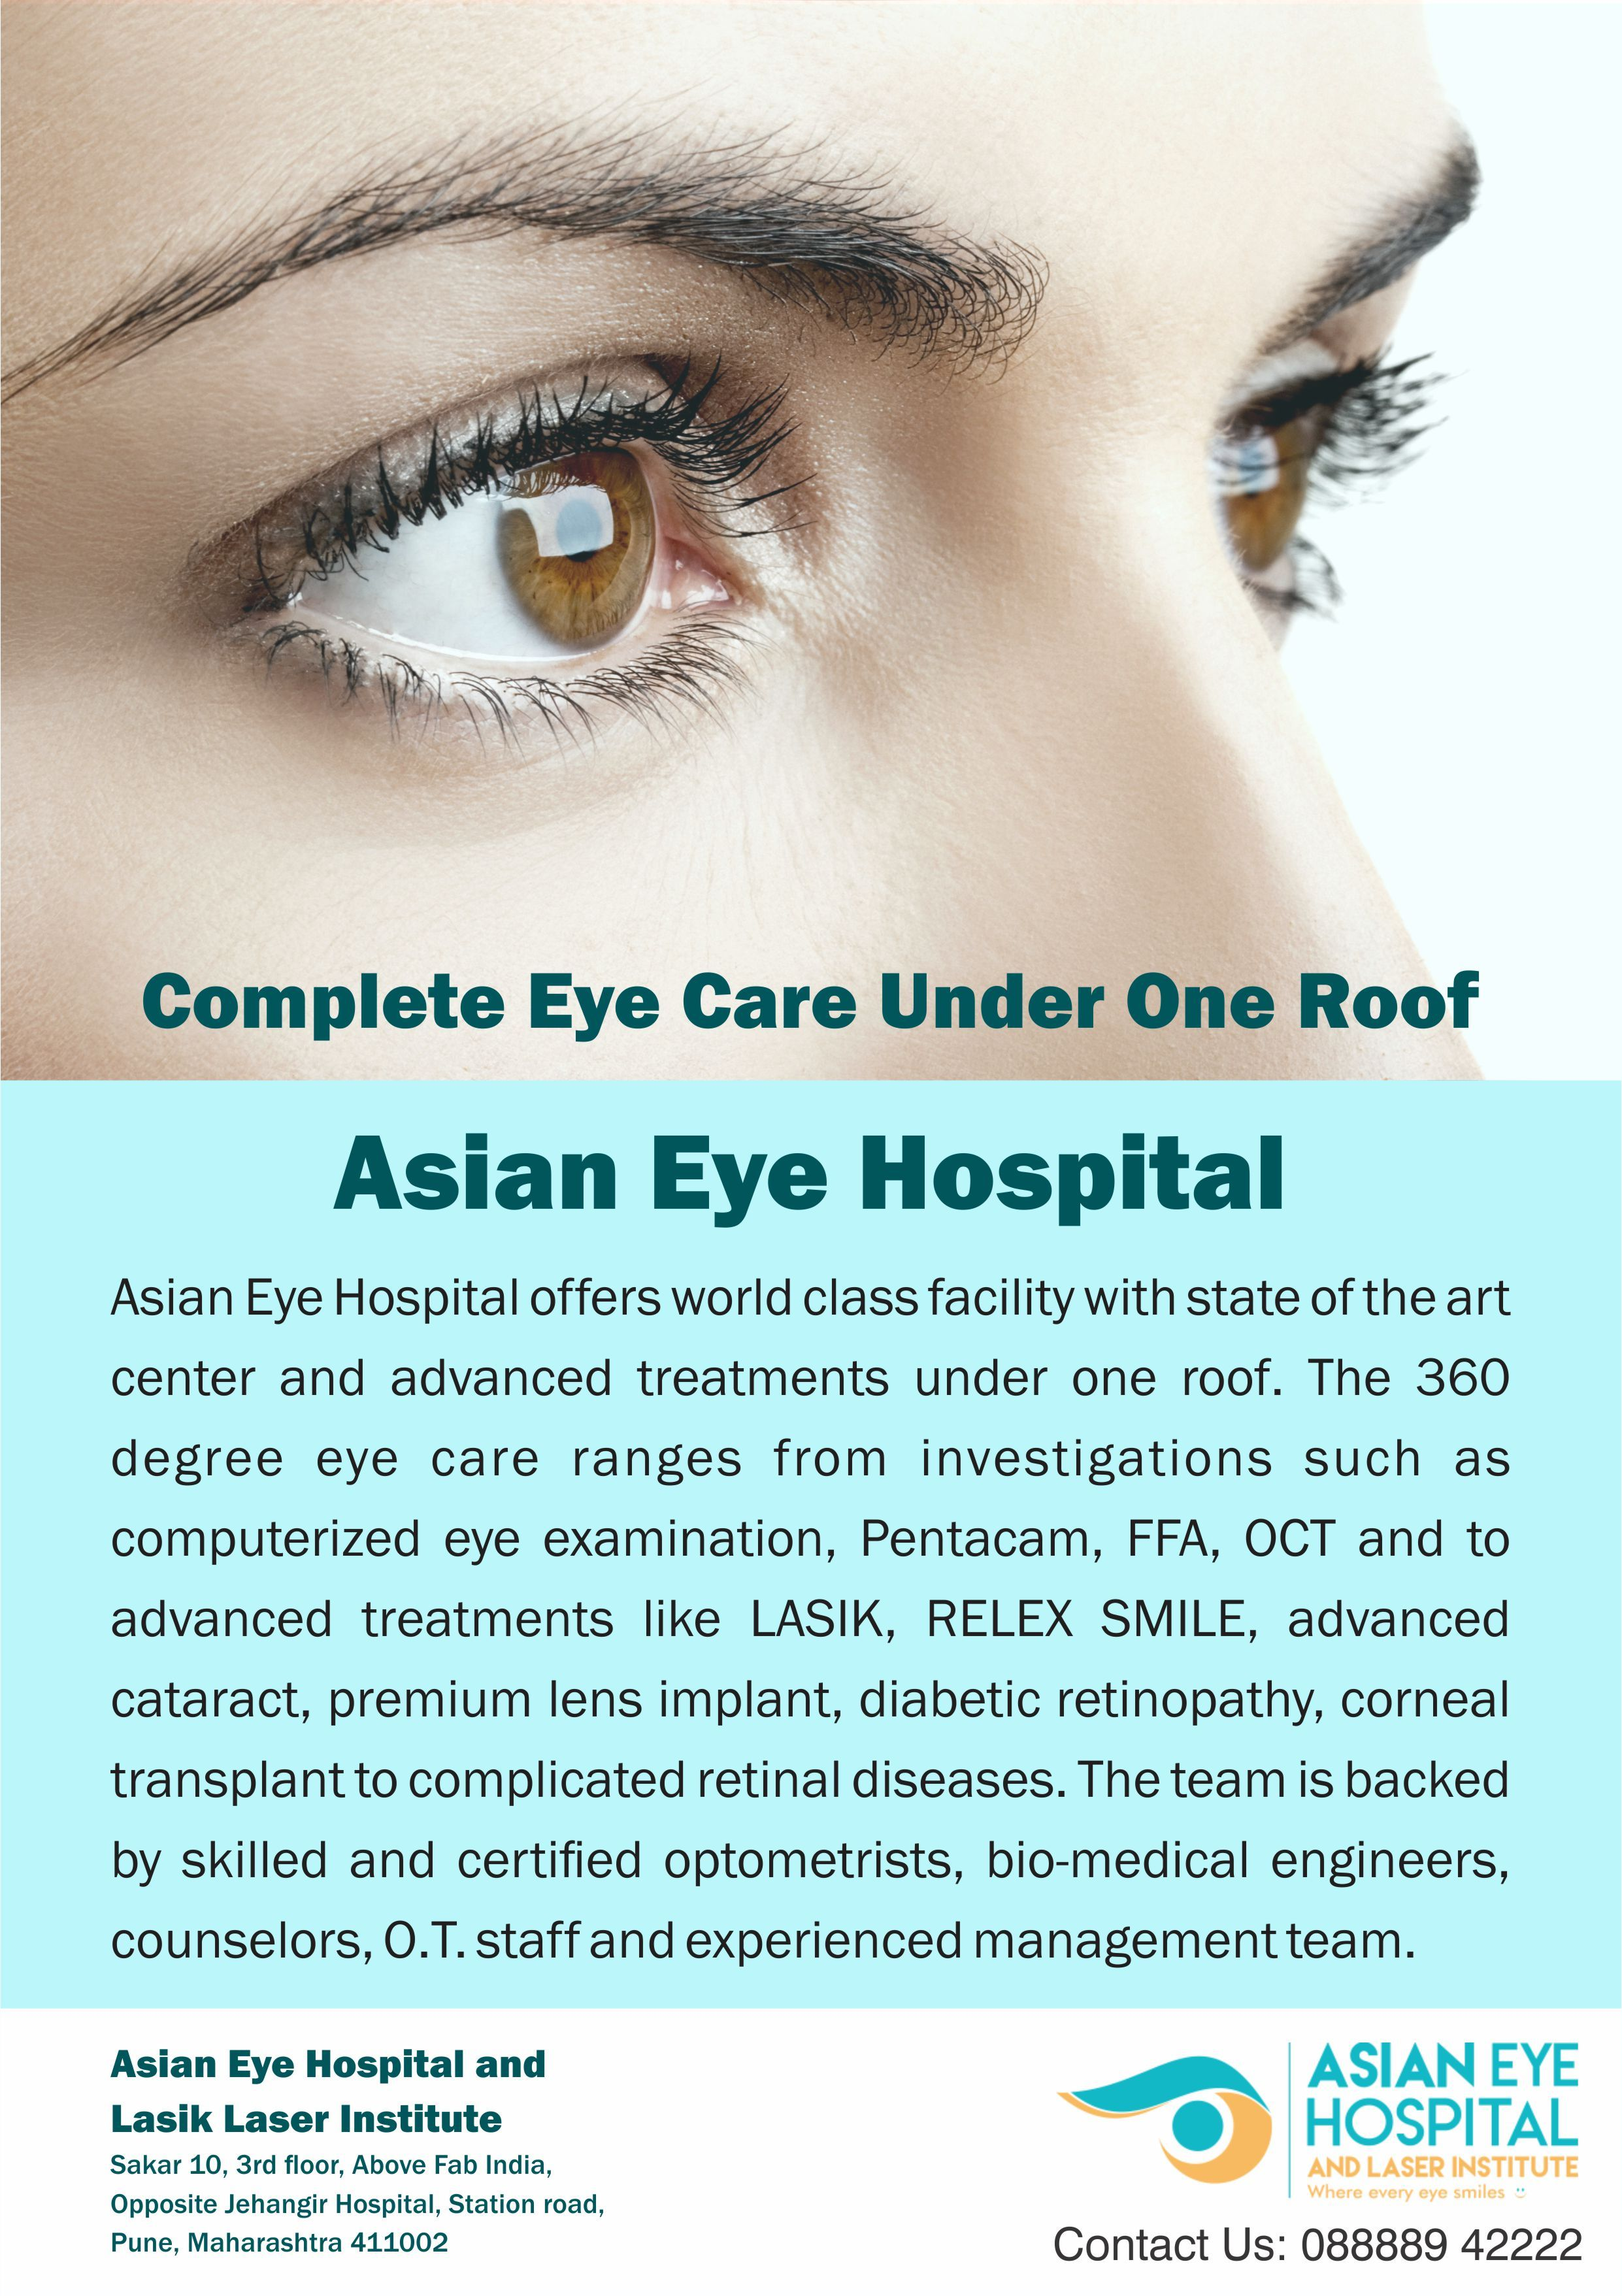 Simple Complete Care Treatment Under One Roof Complete Care Treatment Under One Roof Asian Hospital Atwal Care Doctors Atwal Care Patient Portal houzz 01 Atwal Eye Care